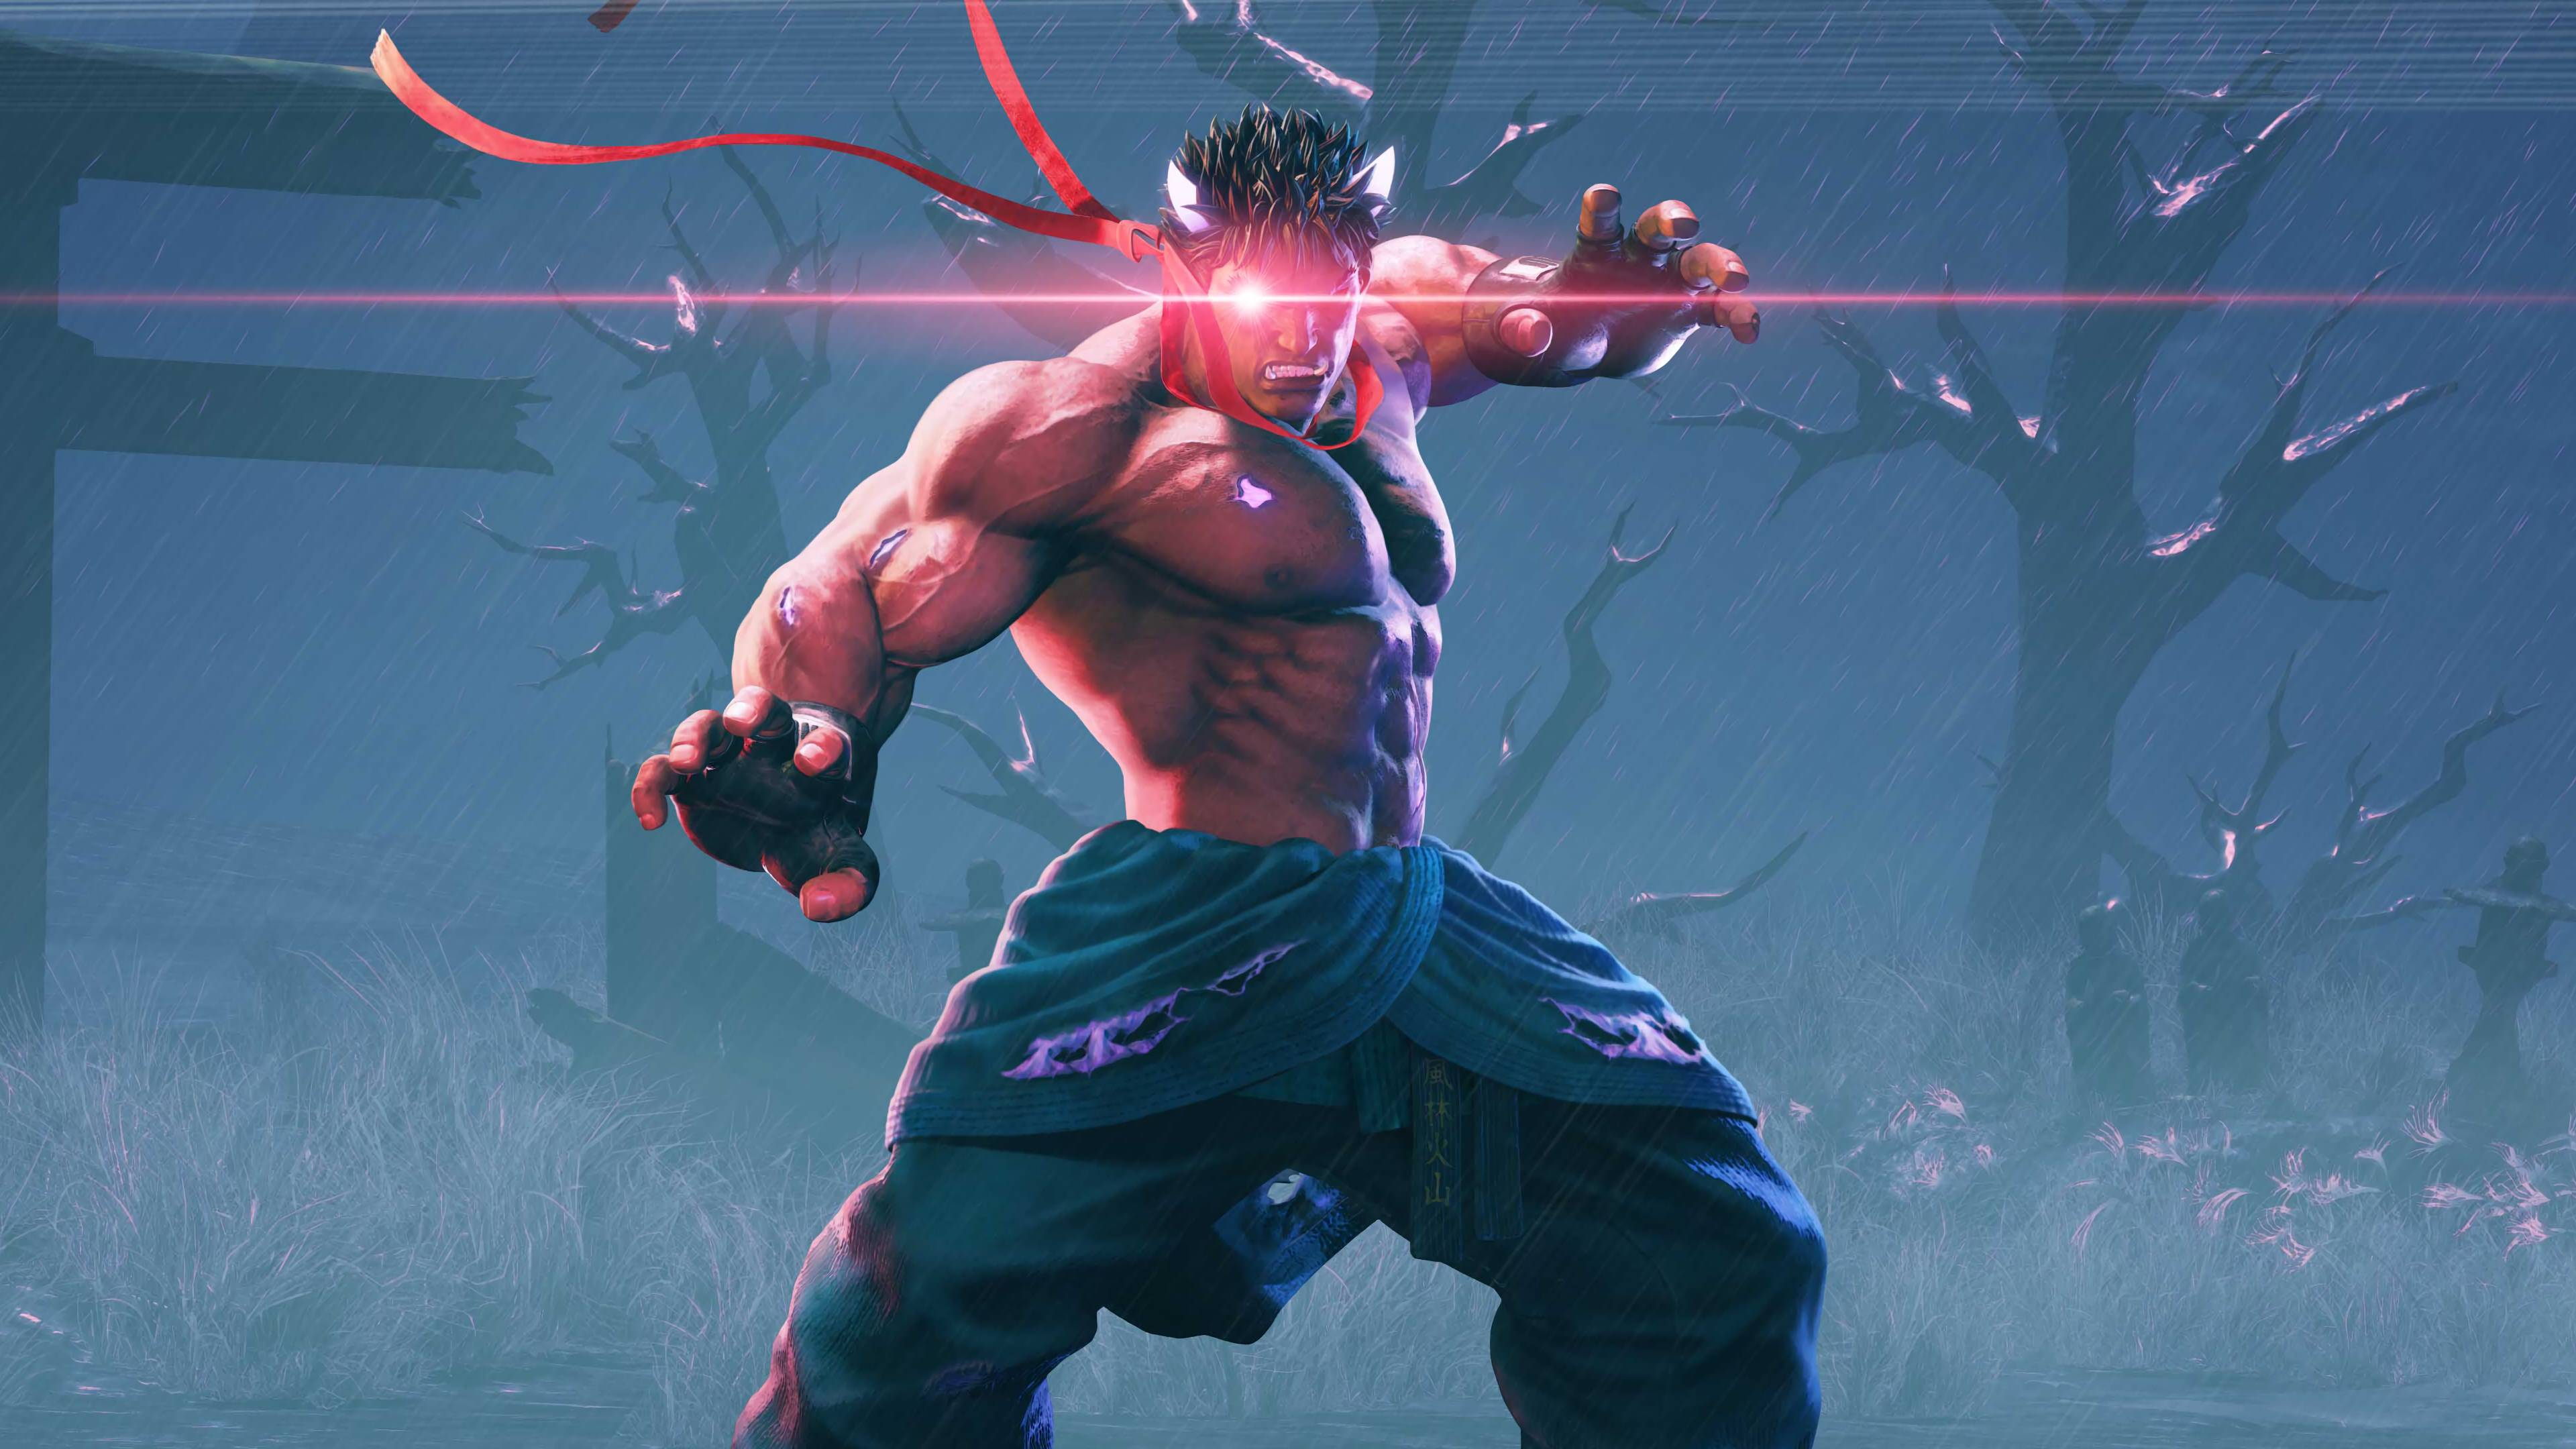 Ryu Street Fighter Wallpapers Top Free Ryu Street Fighter